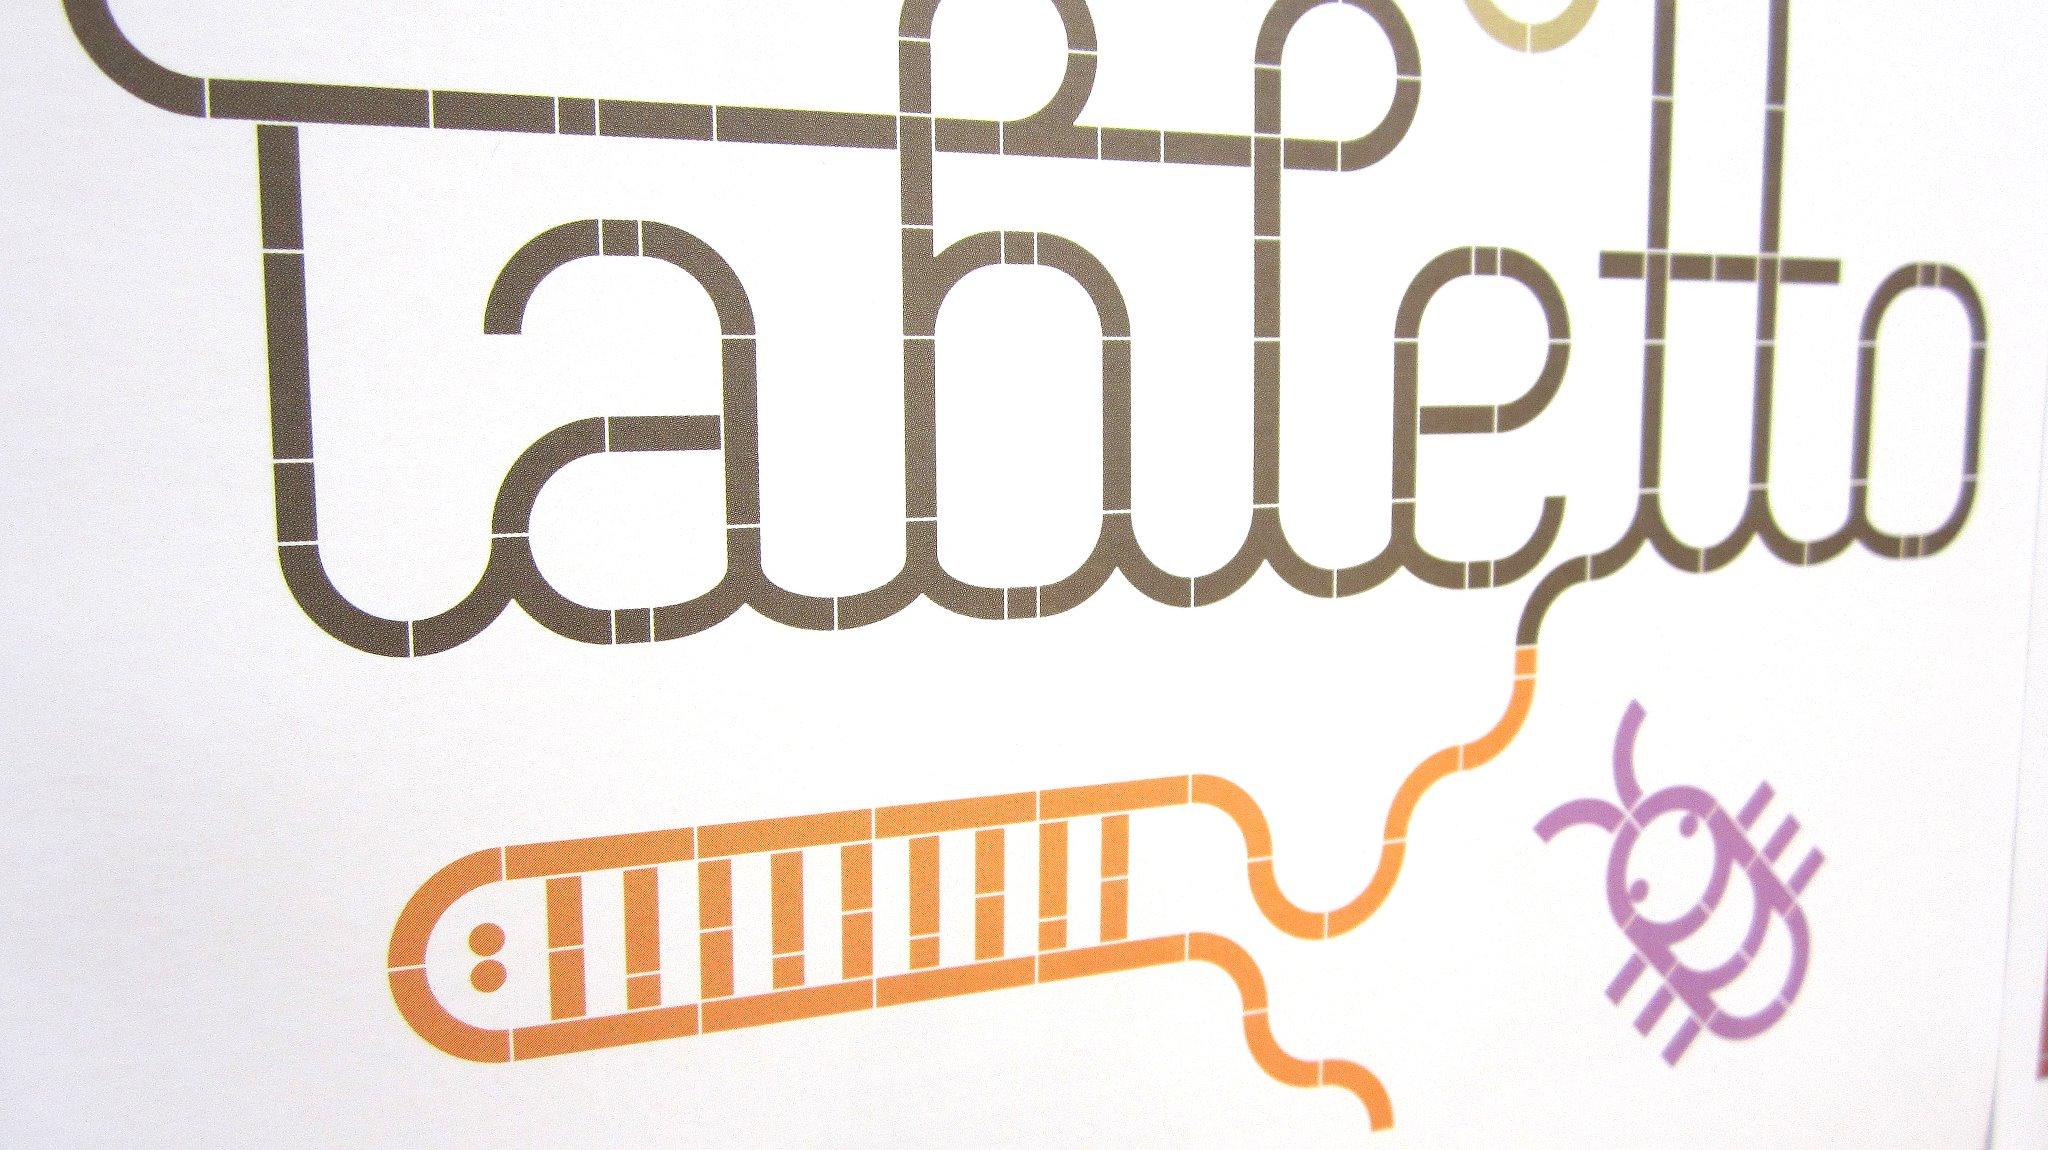 Tabletto_logo_variation